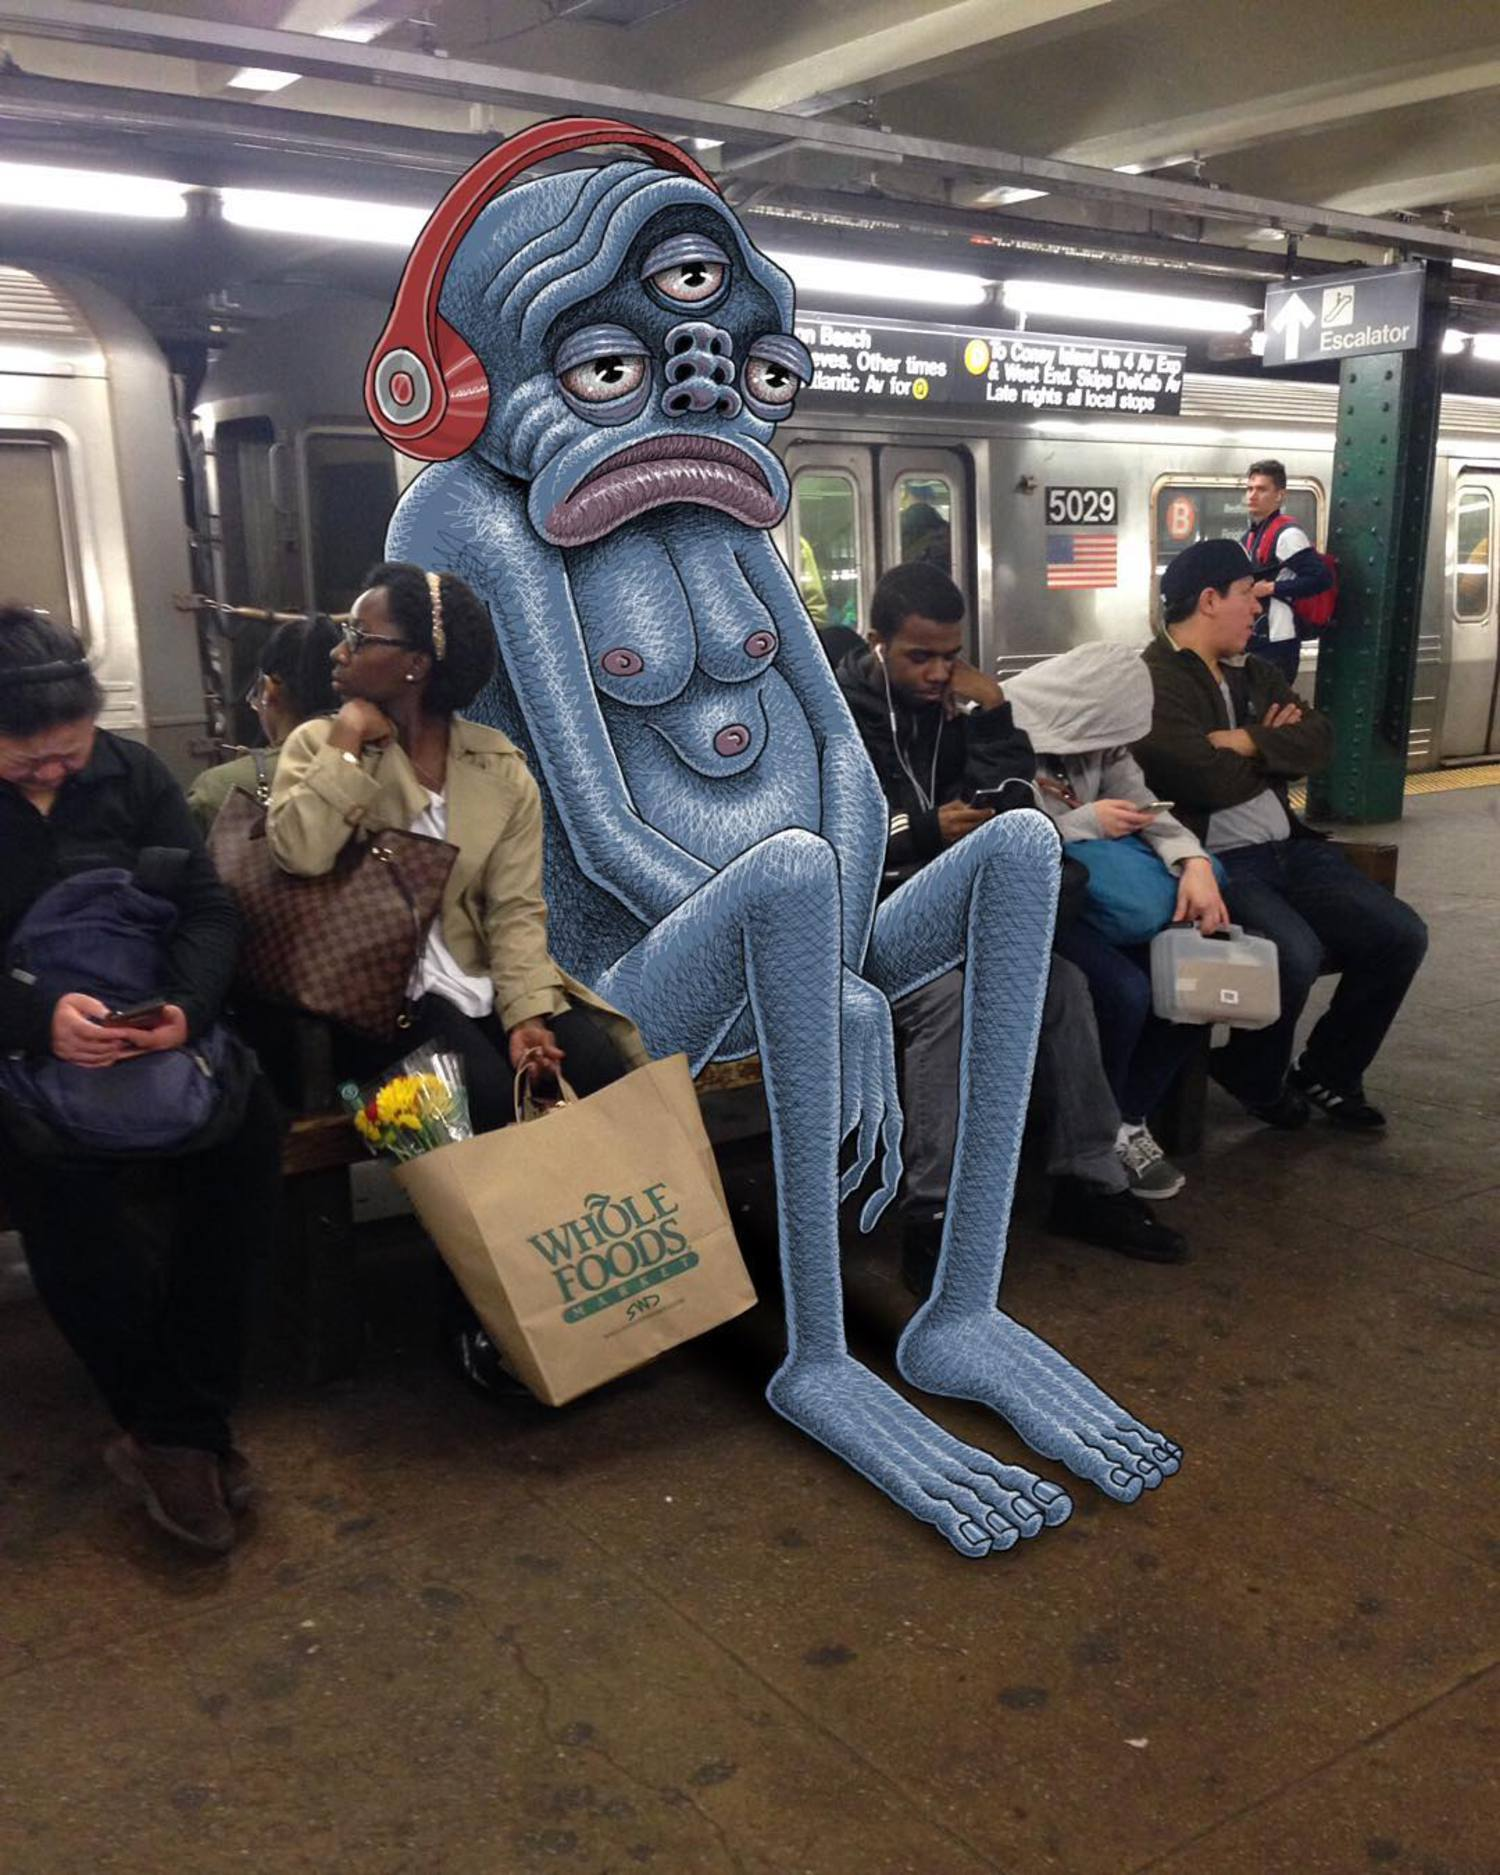 Mondays. #subwaydoodle #subway #doodle #swd #monday #mondays #nyc